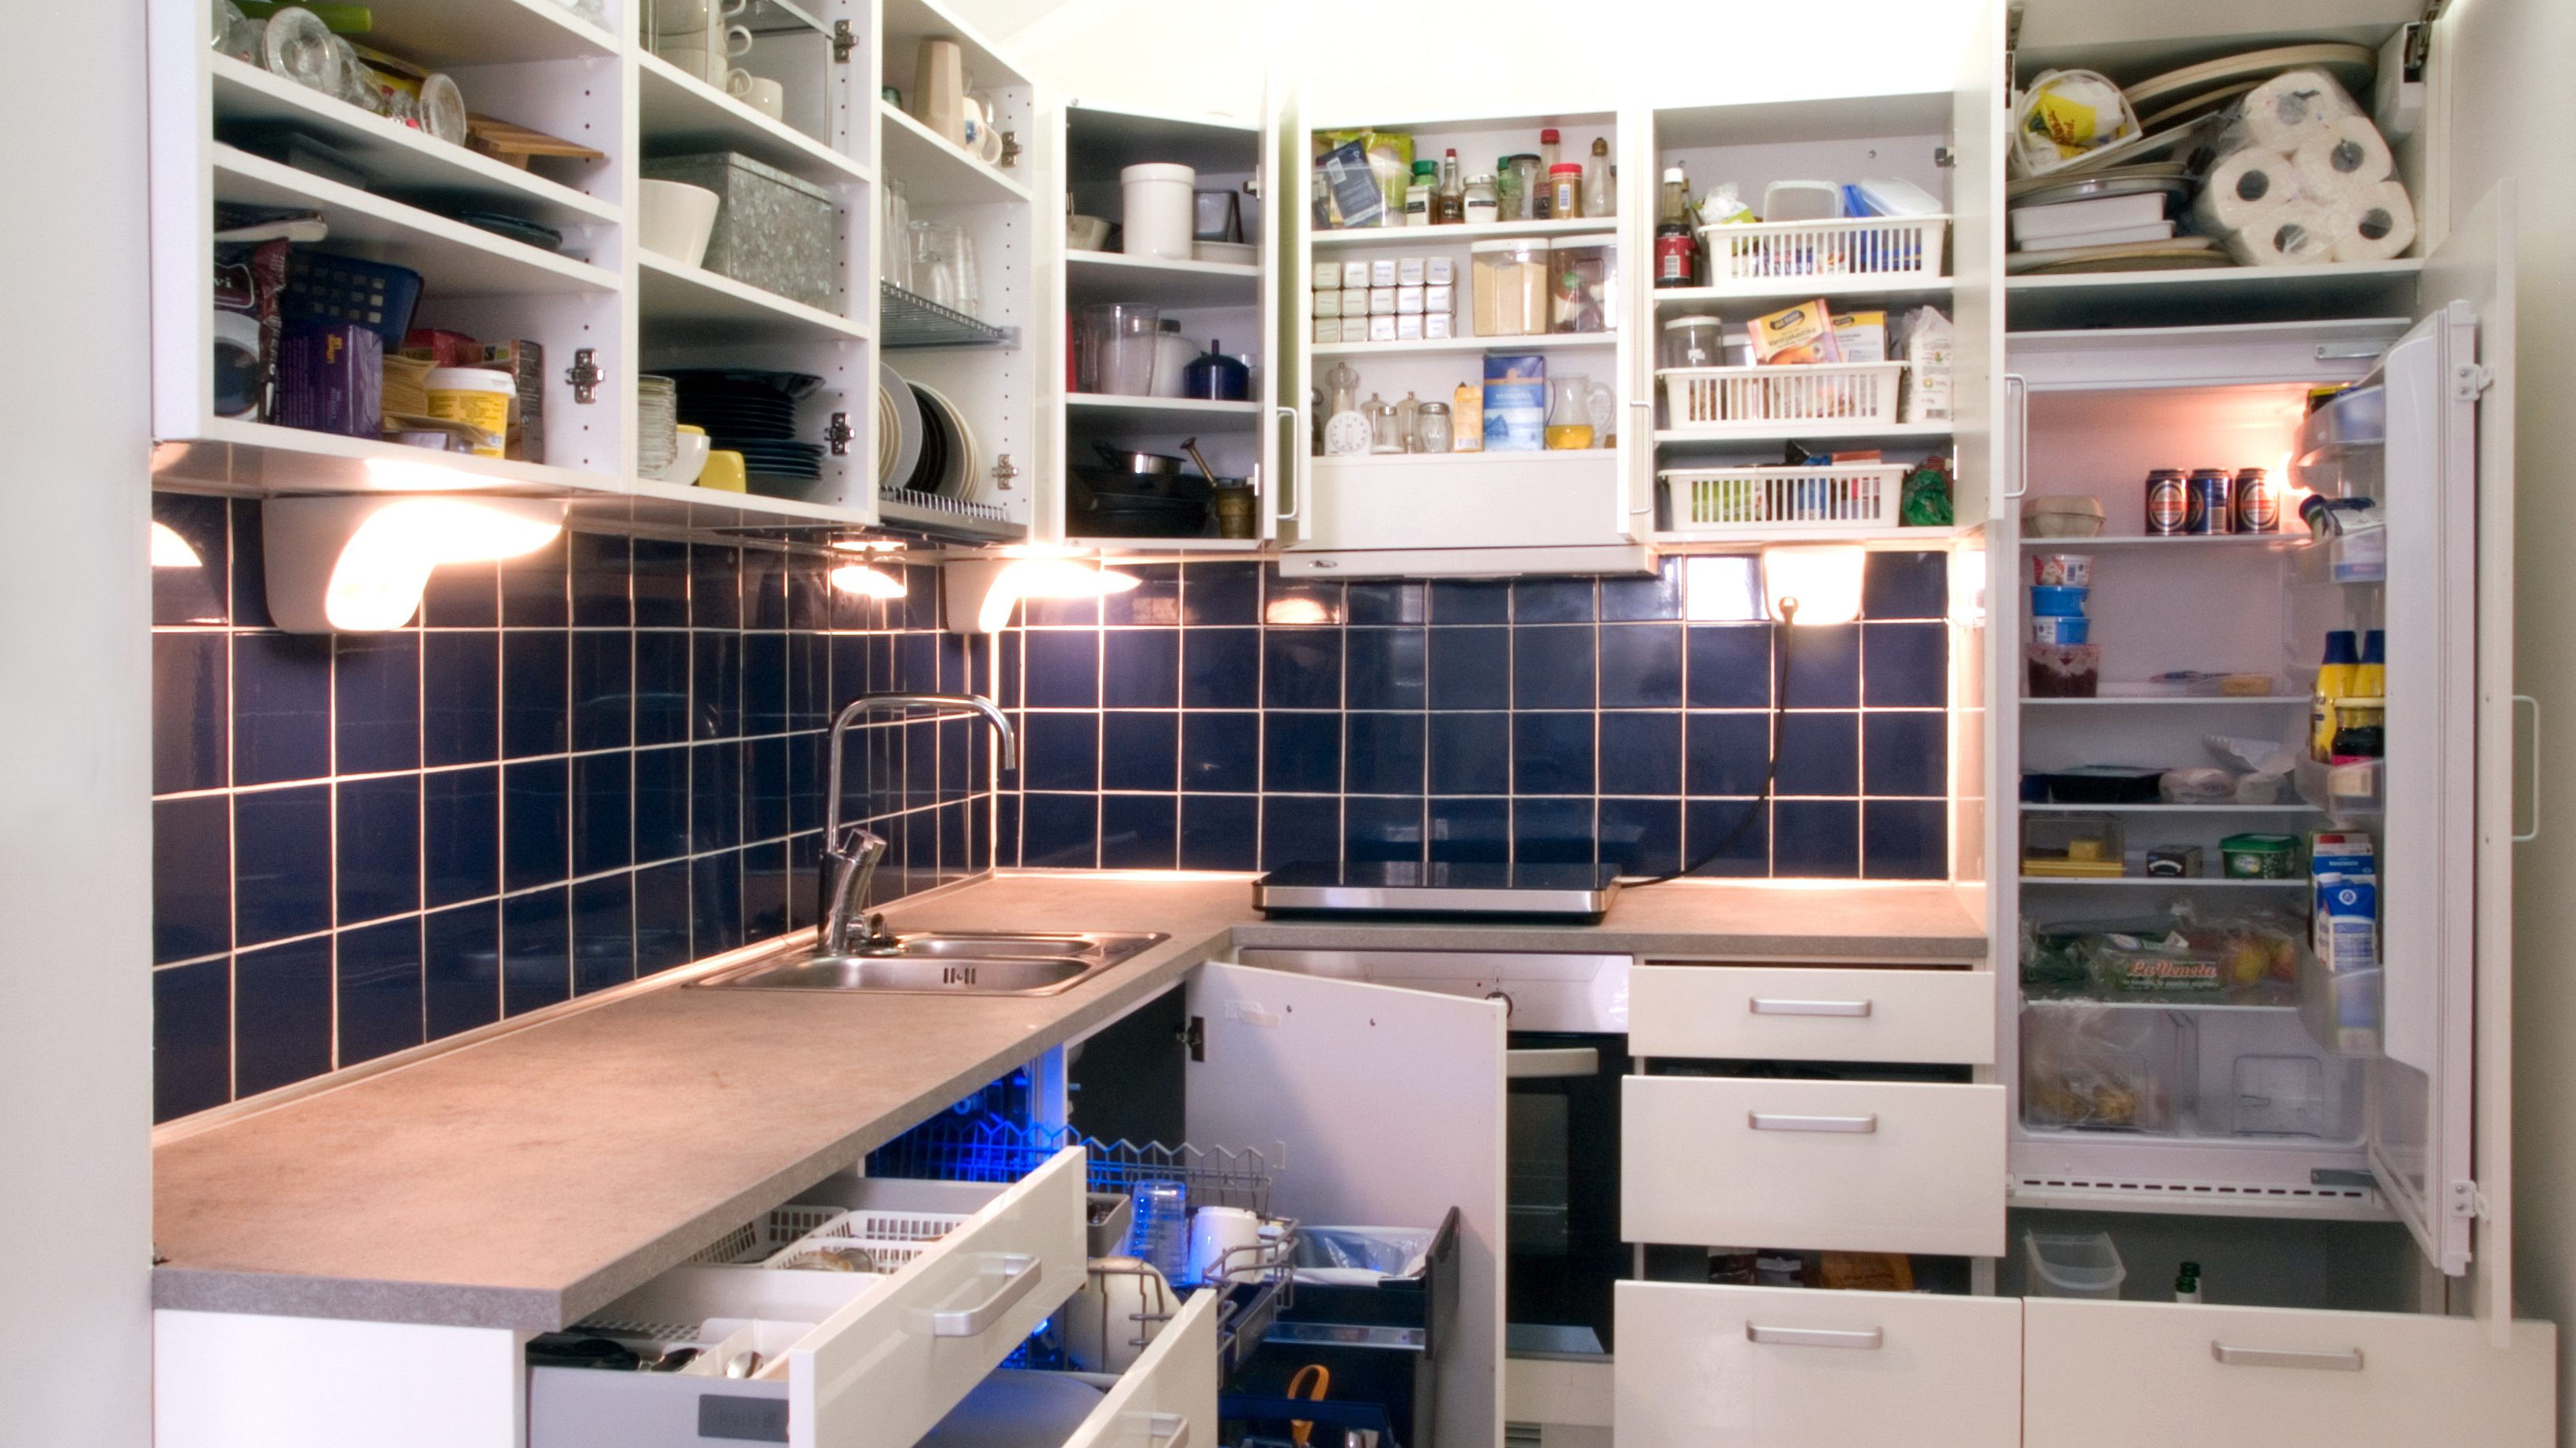 Simphome White kitchen with cabinet doors and drawers opened or removed so that real life stuff can be seen in cabinets